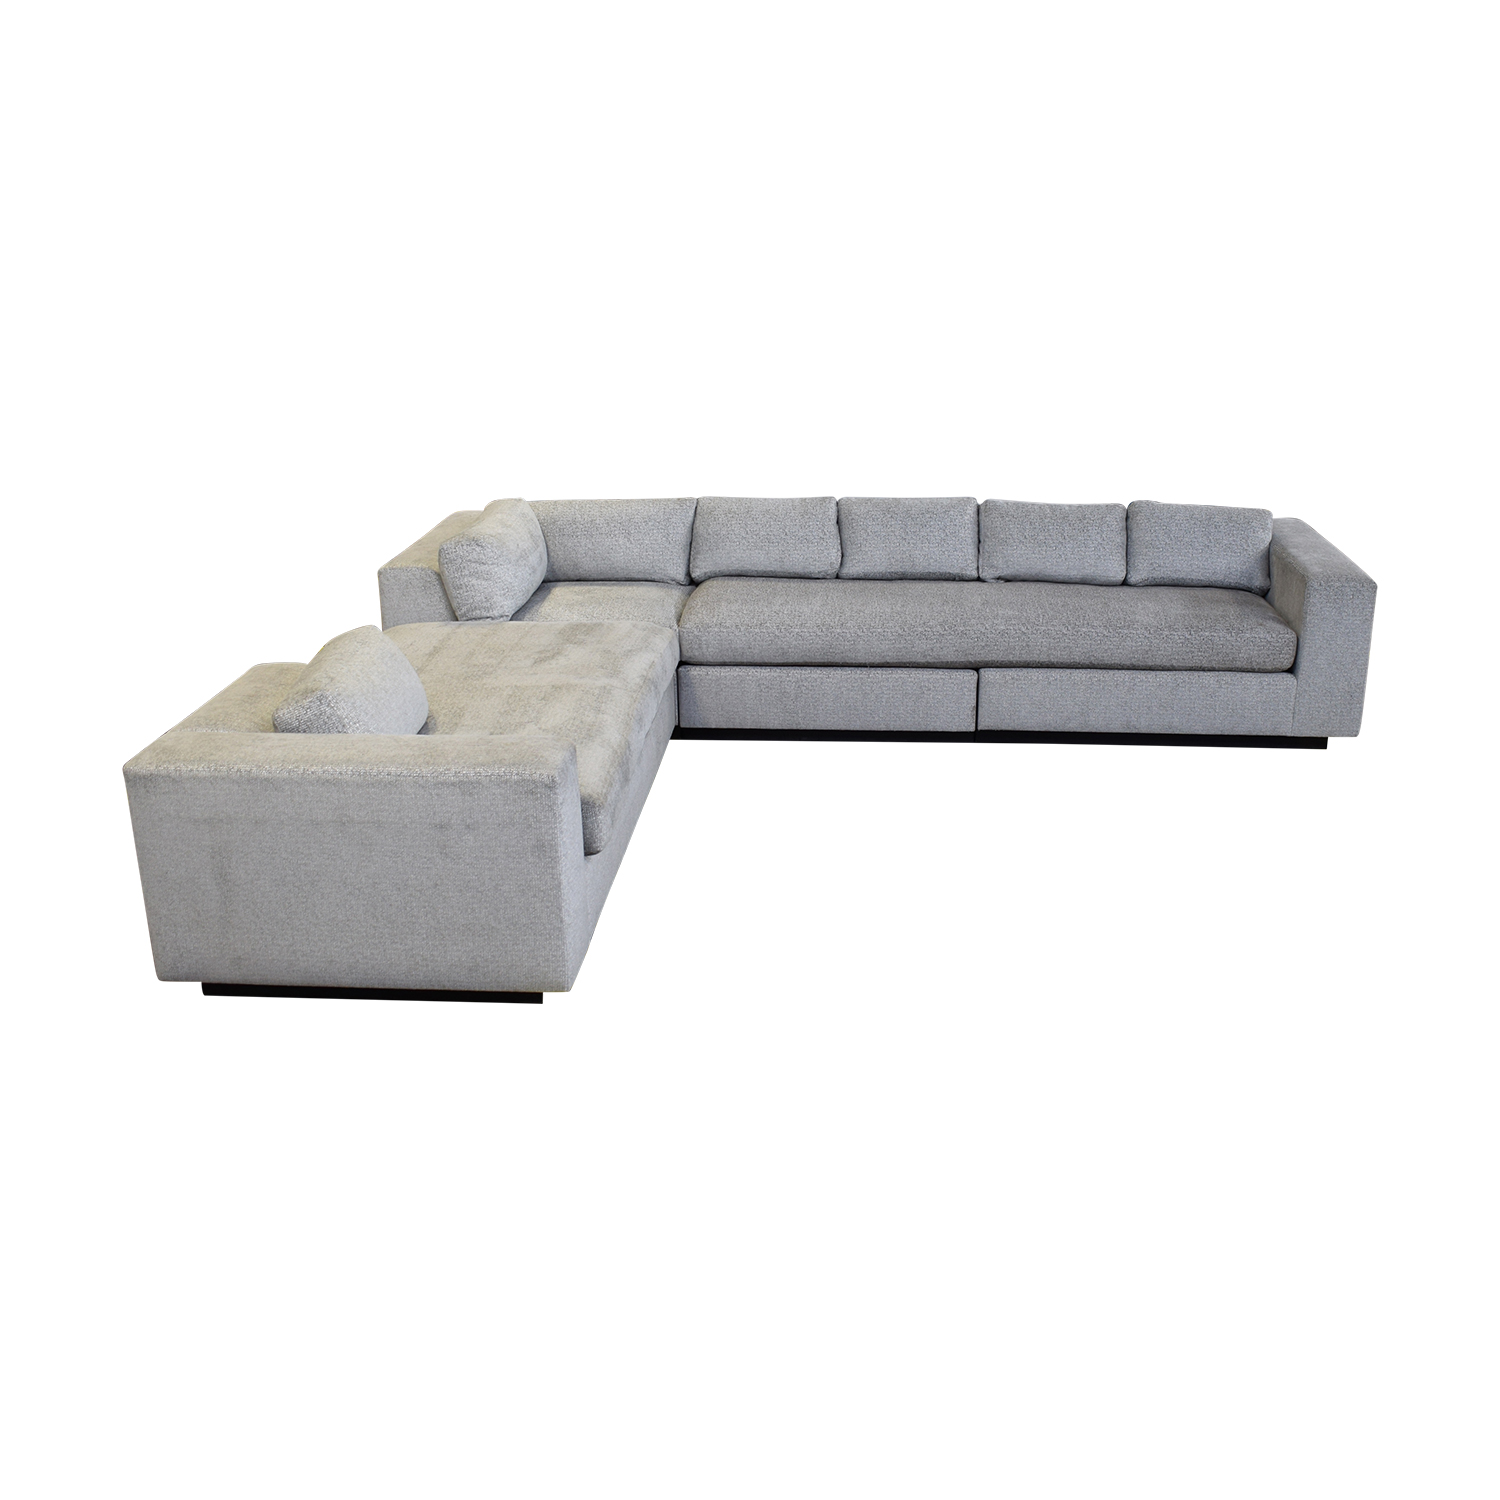 Fine 83 Off Ferrell Mittman Ferrell Mittman Cooper Sectional Sofa With Reverse Chaise Sofas Gmtry Best Dining Table And Chair Ideas Images Gmtryco